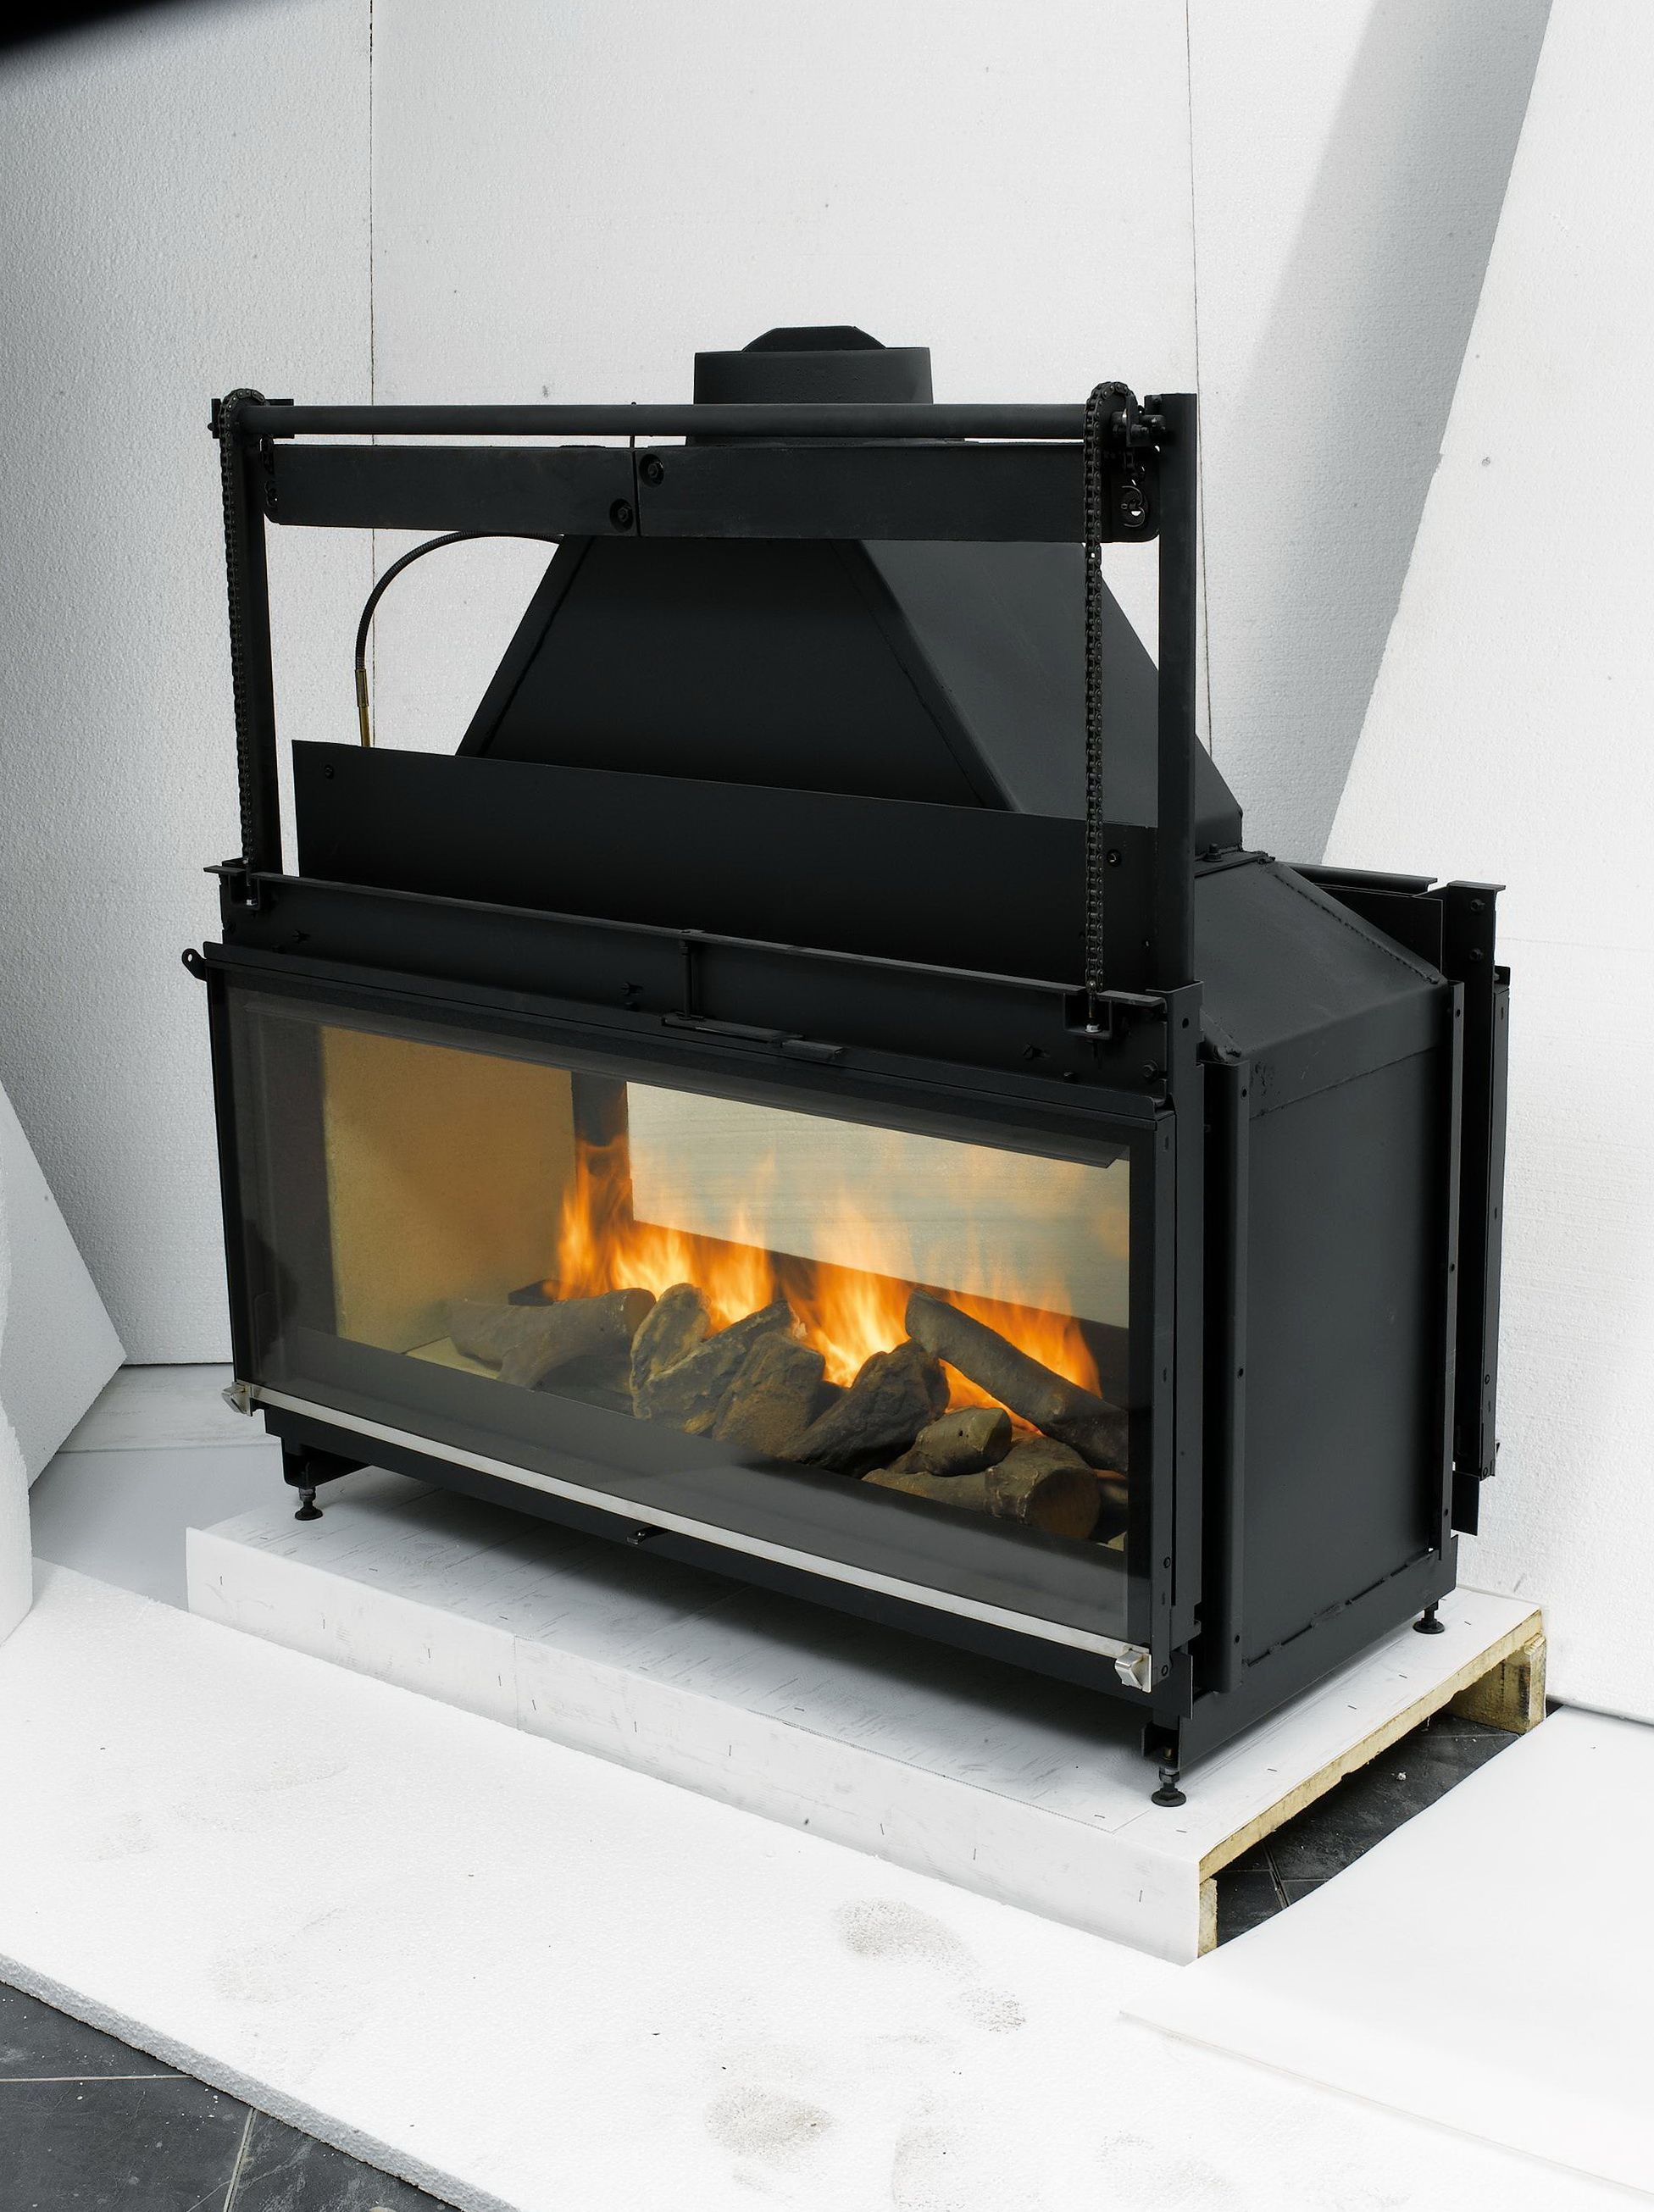 wood burning fireplace with blower in 2020 (With images ...